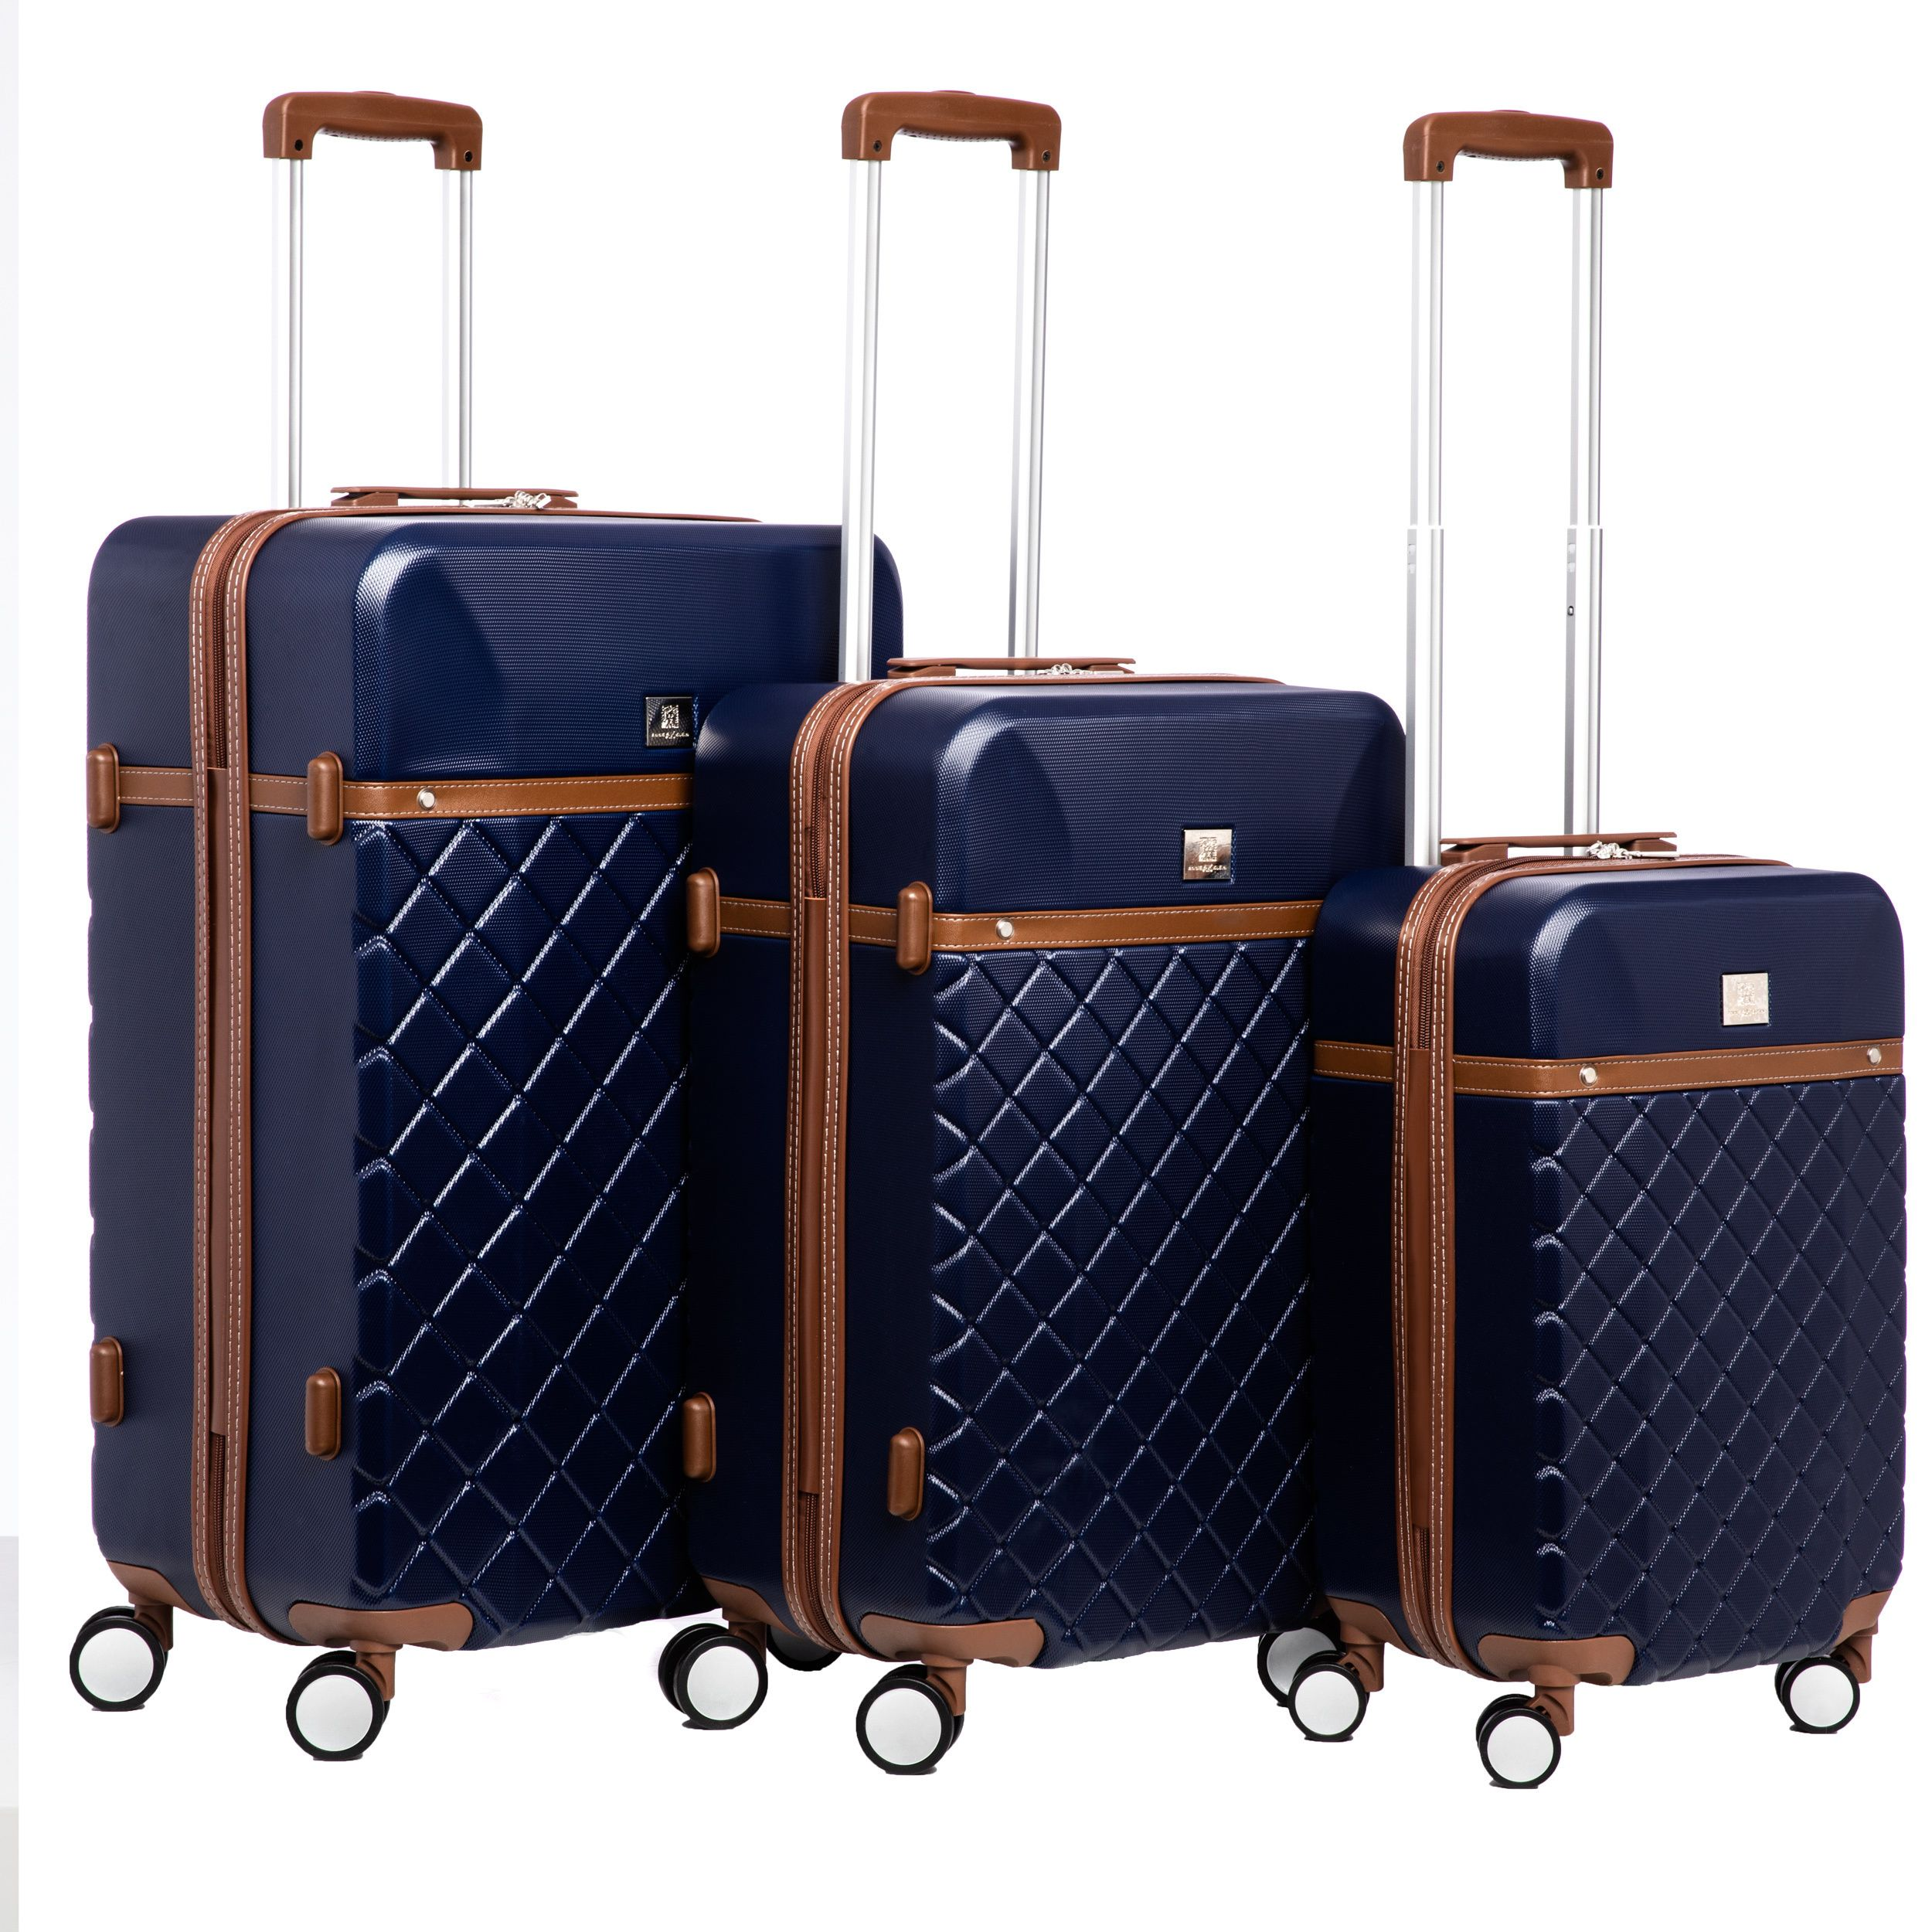 b76b0eb953dc This 3-piece Hardside Luggage Set from Anne Klein features quilted ...